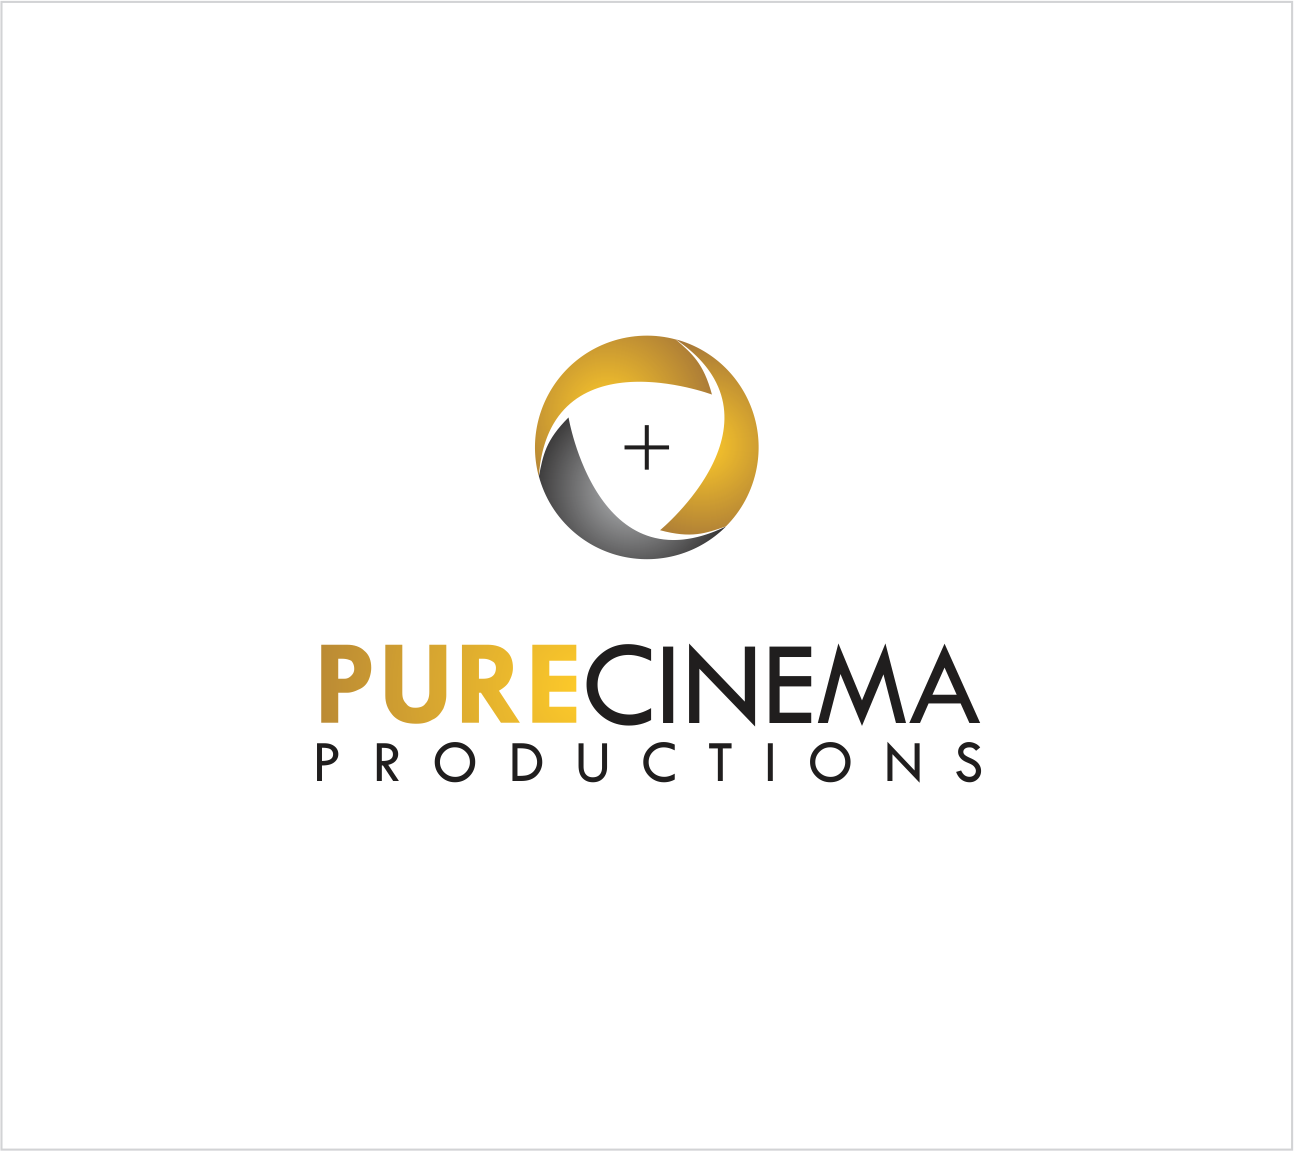 Logo Design by Armada Jamaluddin - Entry No. 29 in the Logo Design Contest Imaginative Logo Design for Pure Cinema.